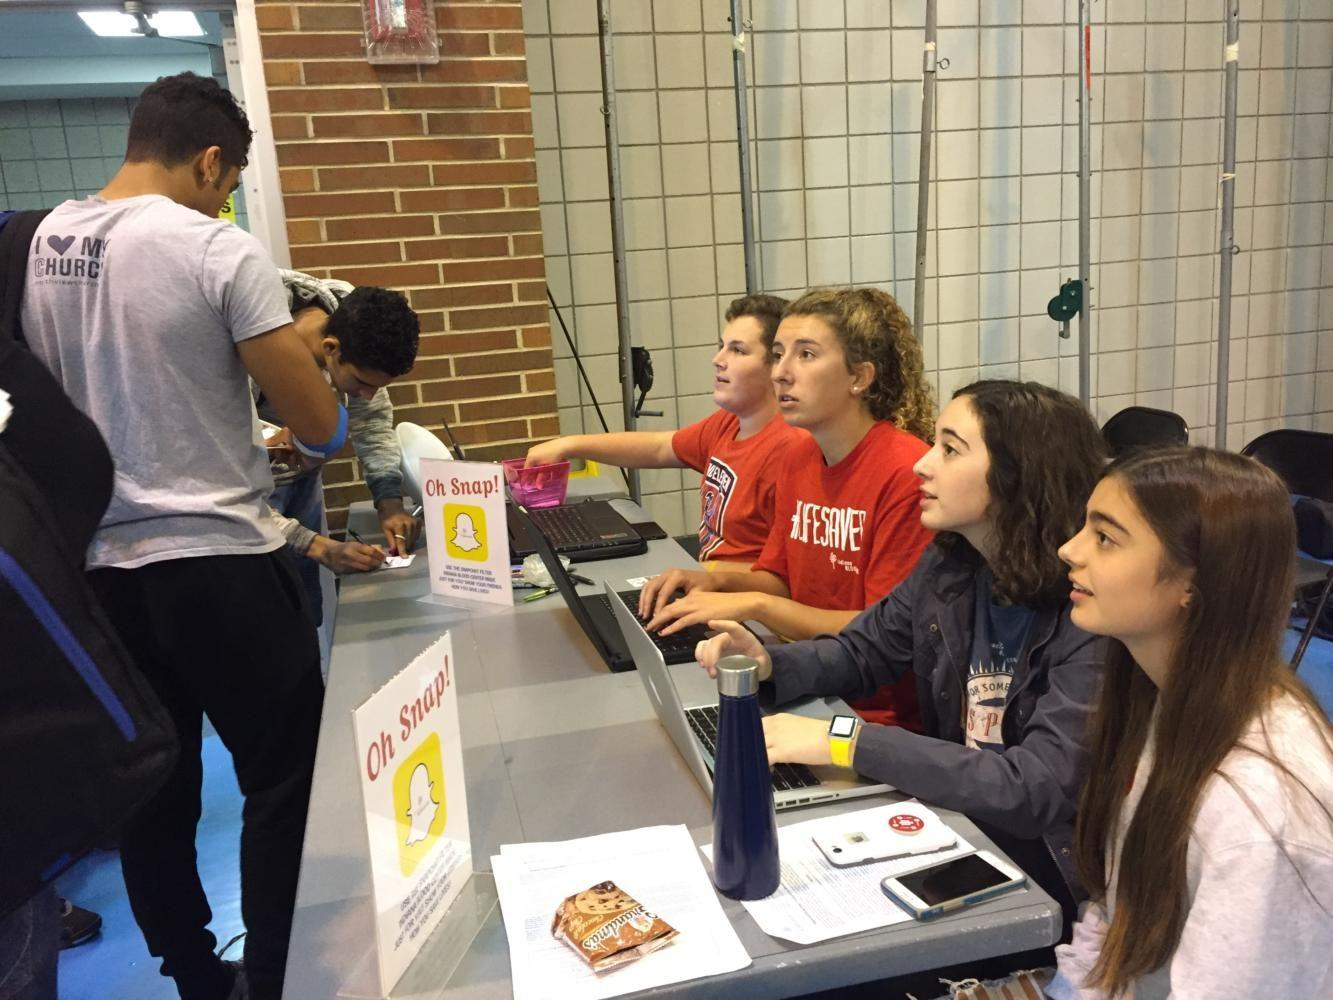 Senators work at the Blood Drive last Friday. Now, Senators are working on Homecoming and Custodial Appreciation Week, as well as Care to Share and other activities for the future.